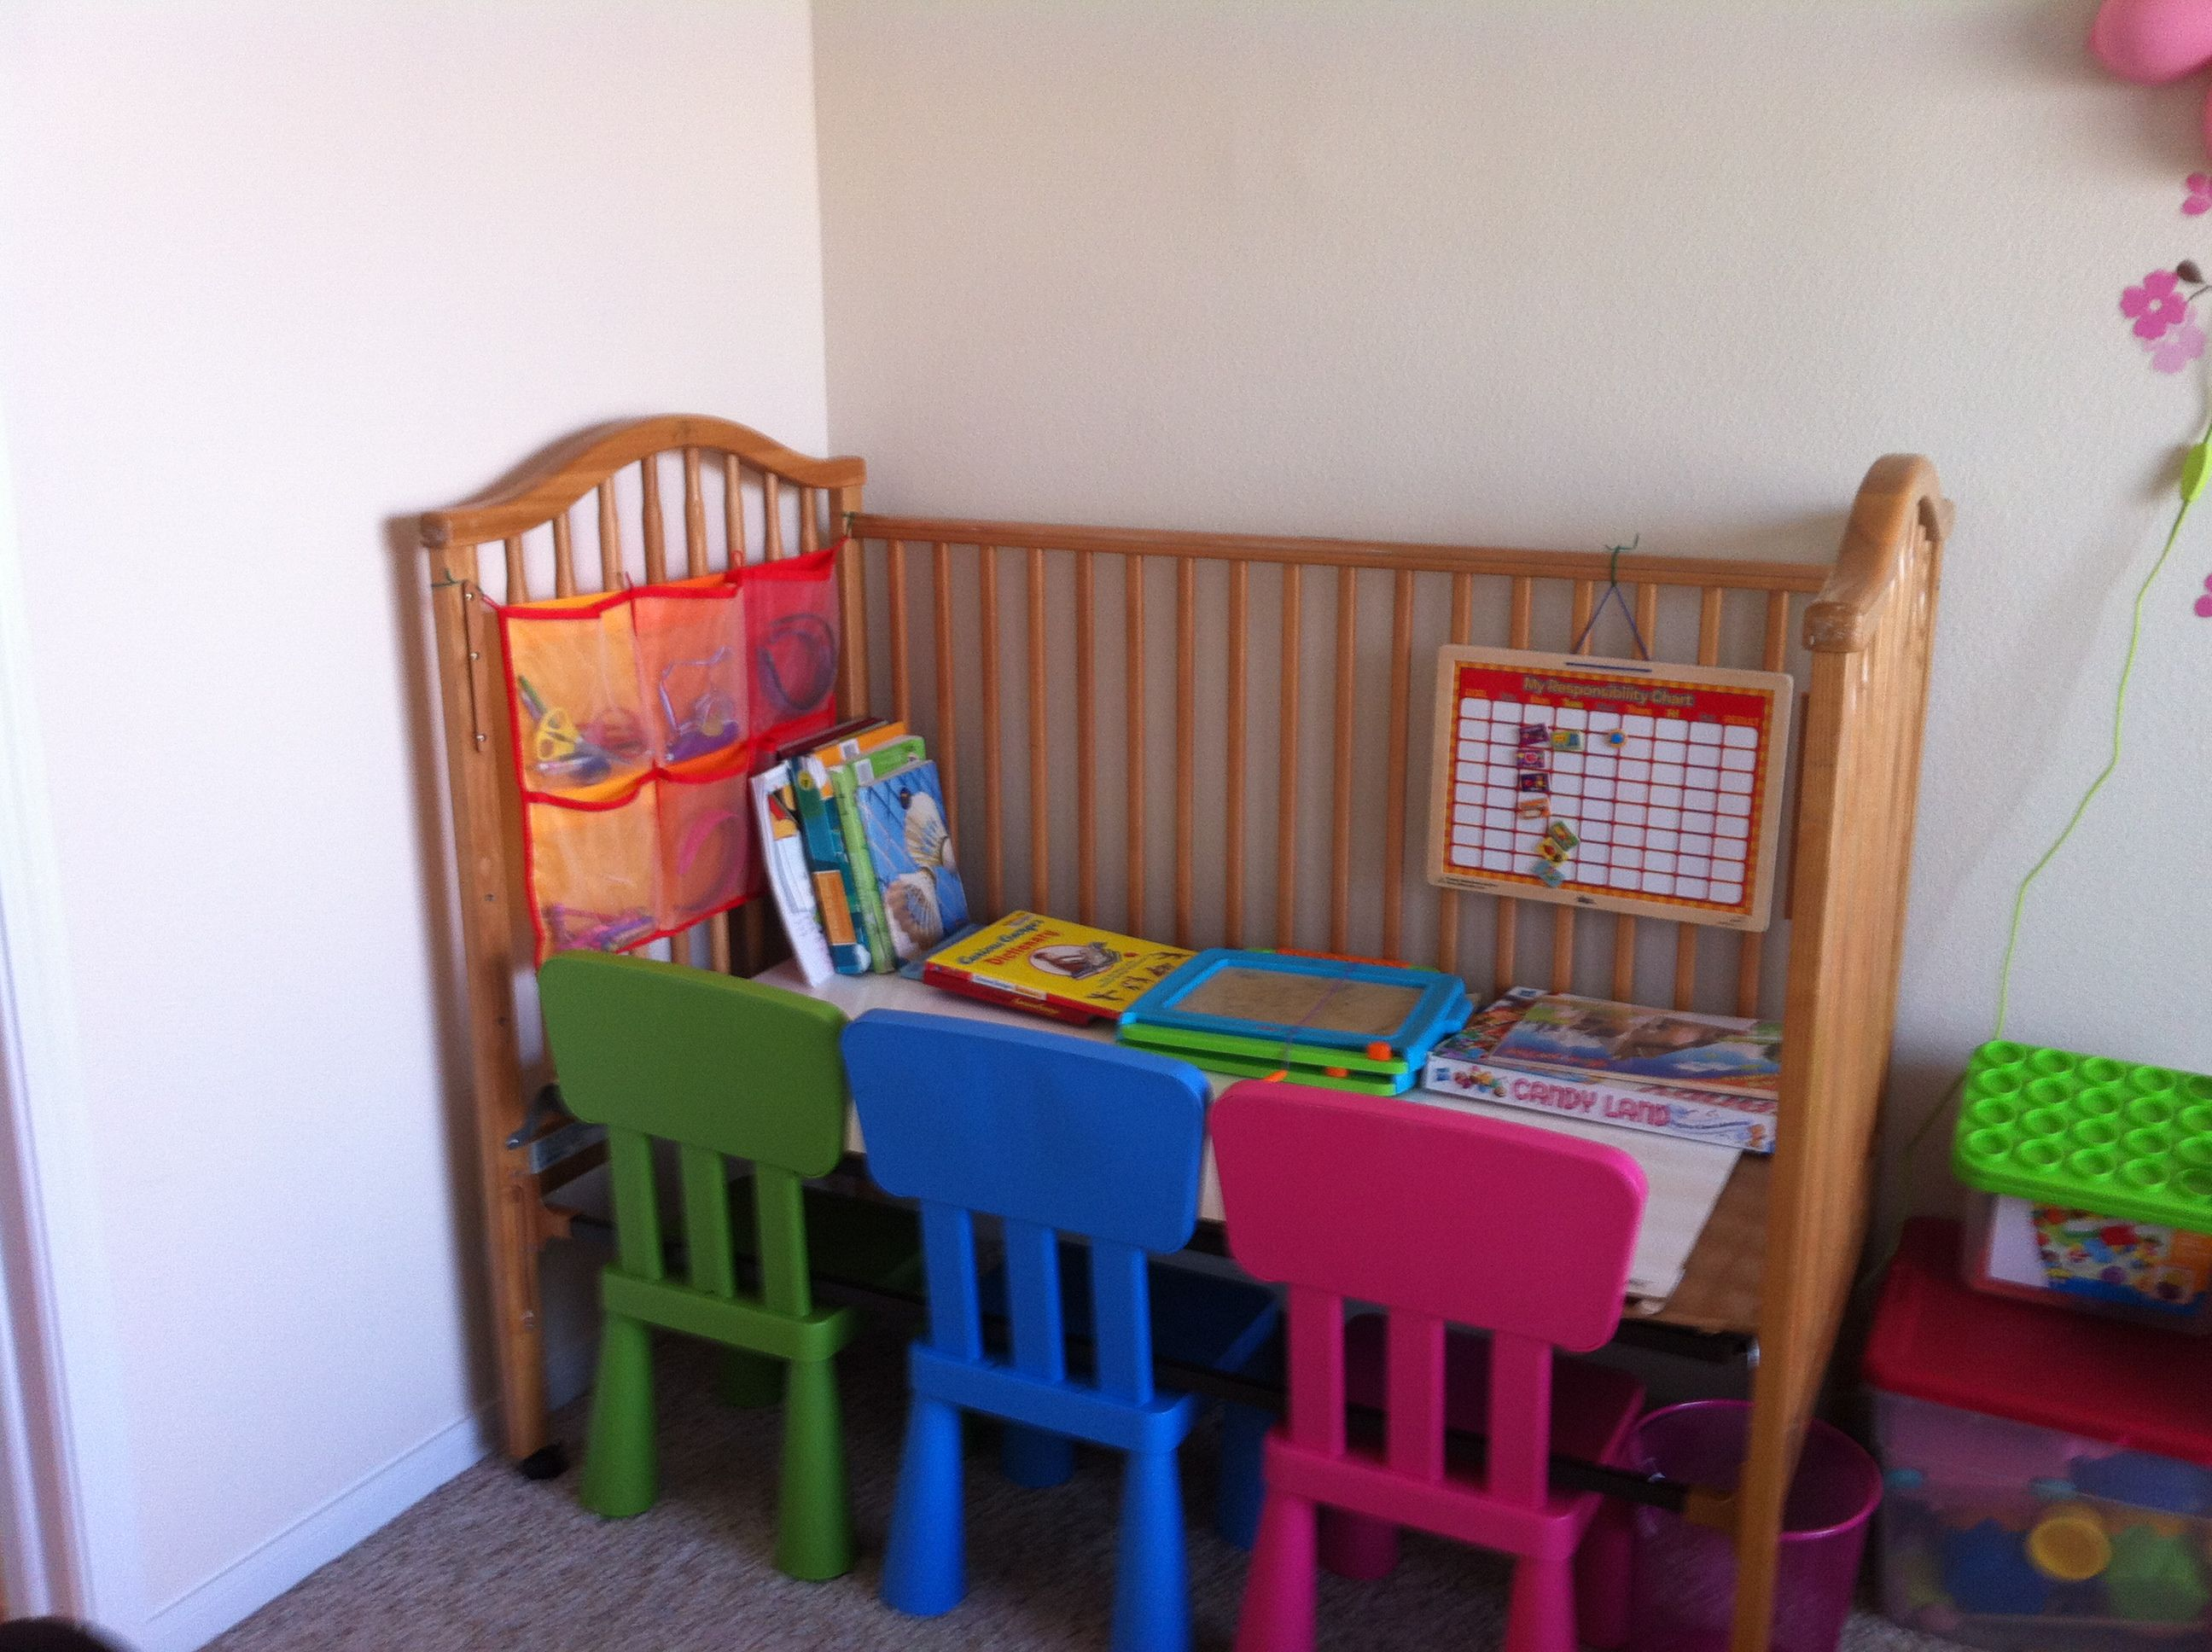 Baby cribs for daycare centers - Old Simmons Crib Converted To Study Corner With A Doubled Up Wooden Marker Board From